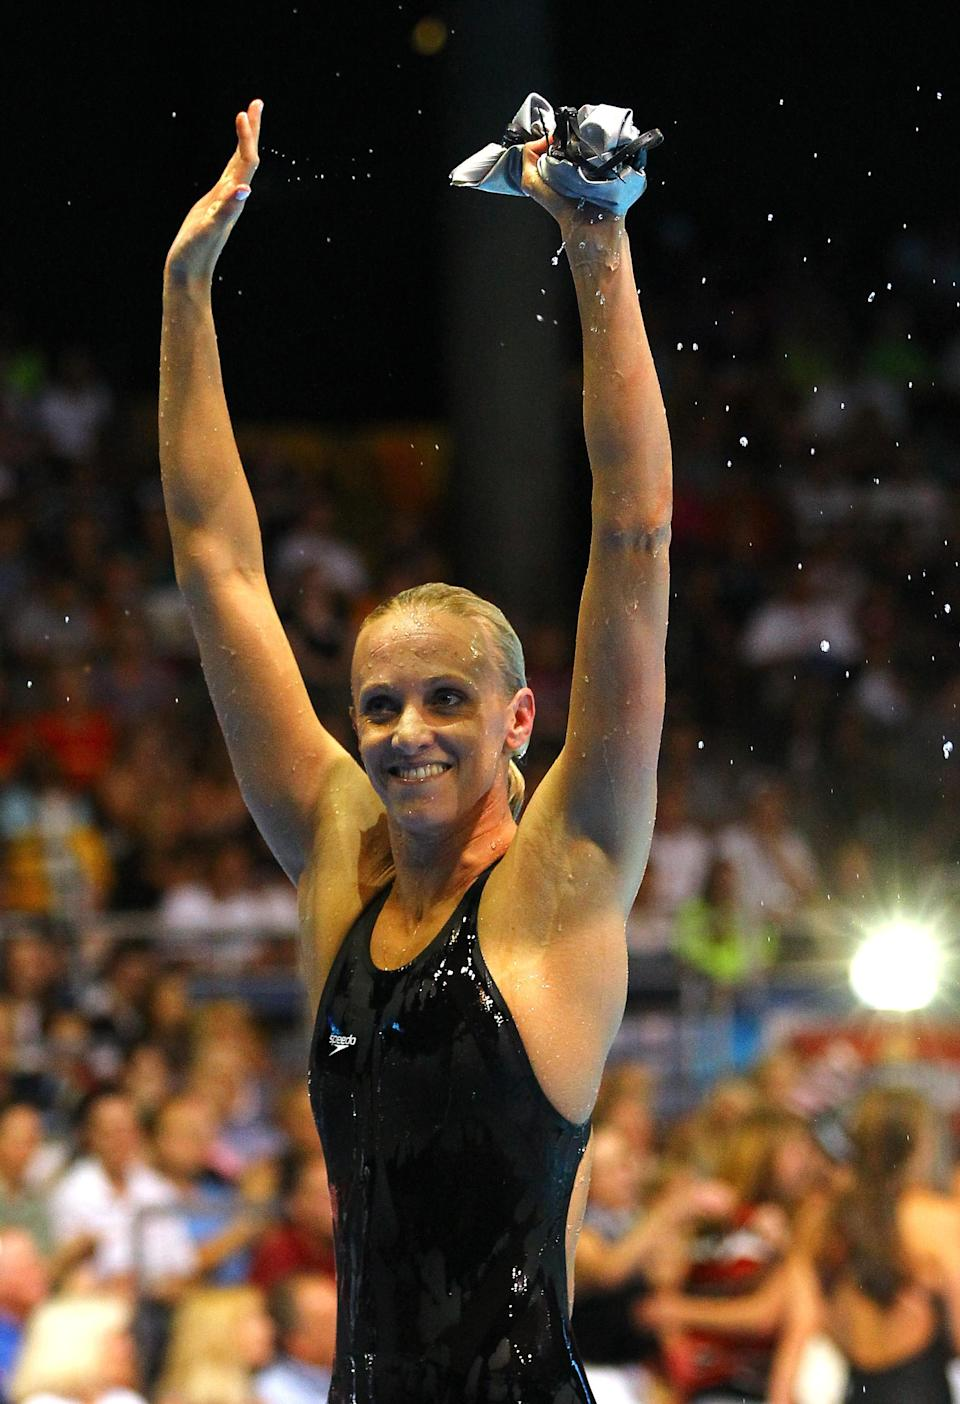 OMAHA, NE - JUNE 26: Dana Vollmer celebrates after she finished first in the championship final heat of the Women's 100 m Butterfly during Day Two of the 2012 U.S. Olympic Swimming Team Trials at CenturyLink Center on June 26, 2012 in Omaha, Nebraska. (Photo by Al Bello/Getty Images)